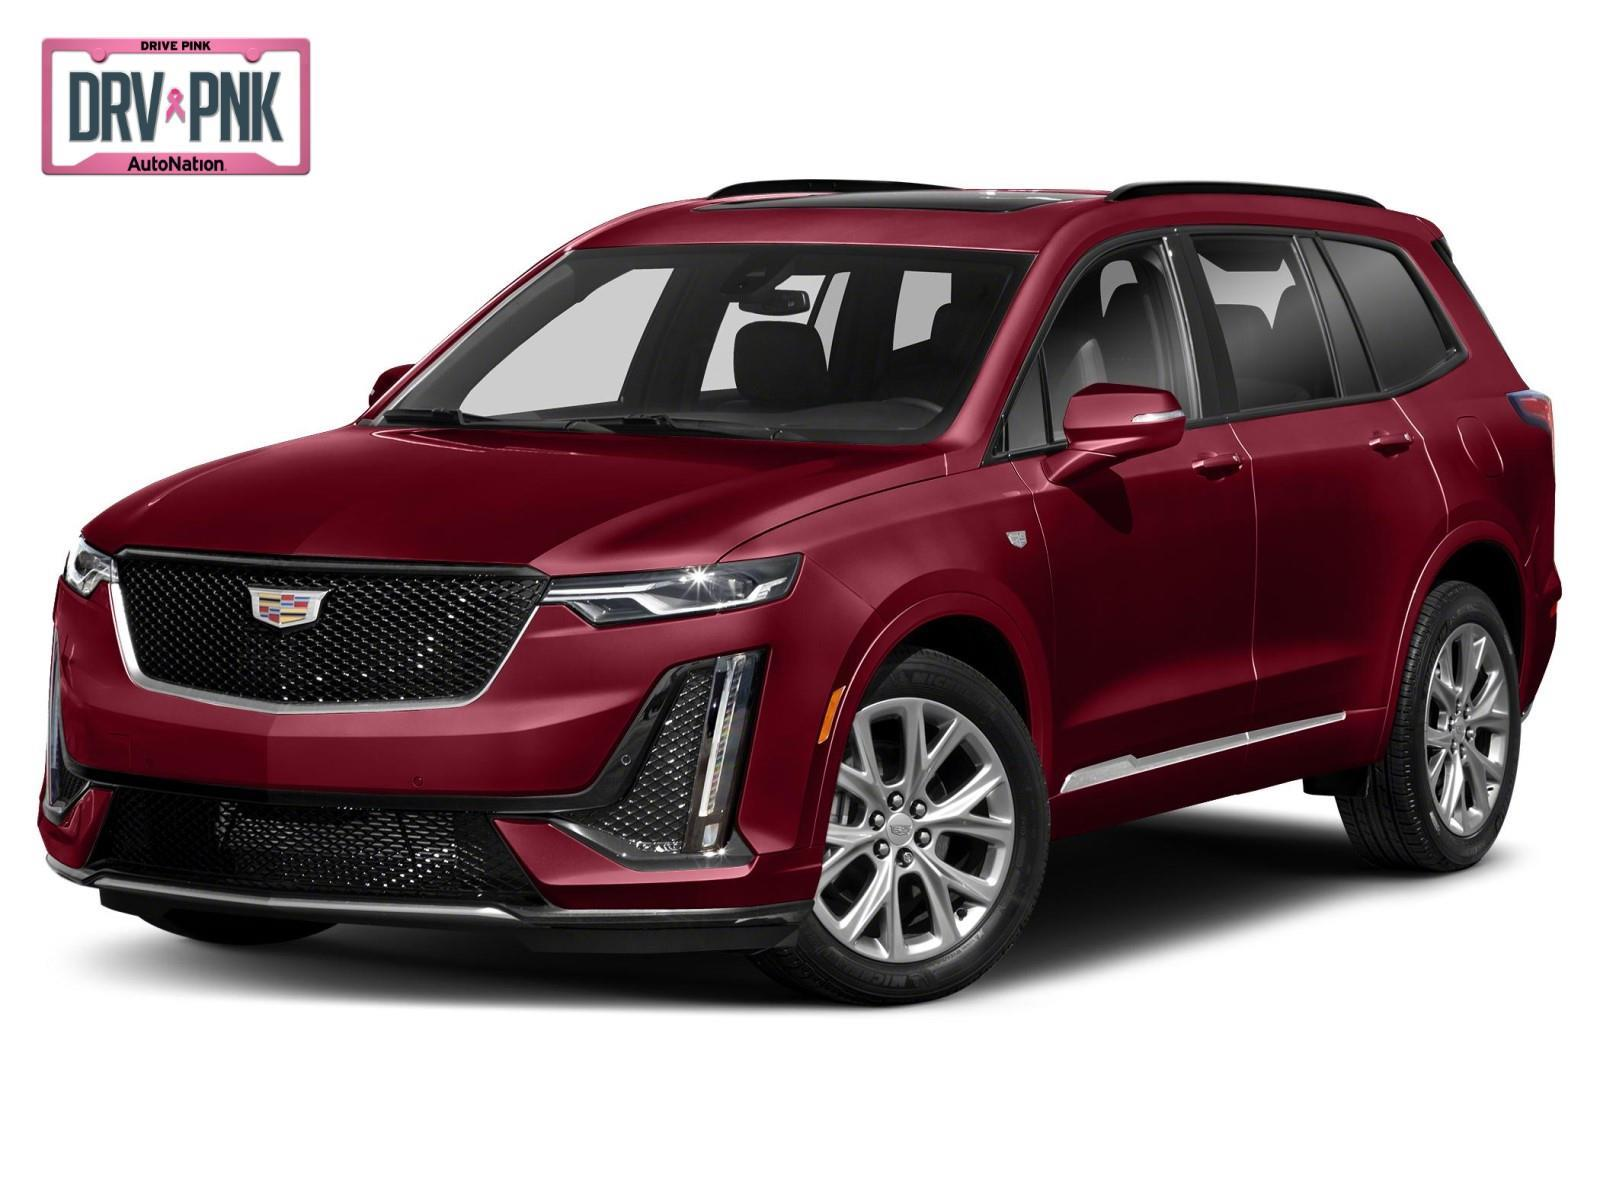 Autonation Amarillo Tx >> 1gykpgrs8lz146674 2020 Cadillac Xt6 For Sale In Amarillo Tx